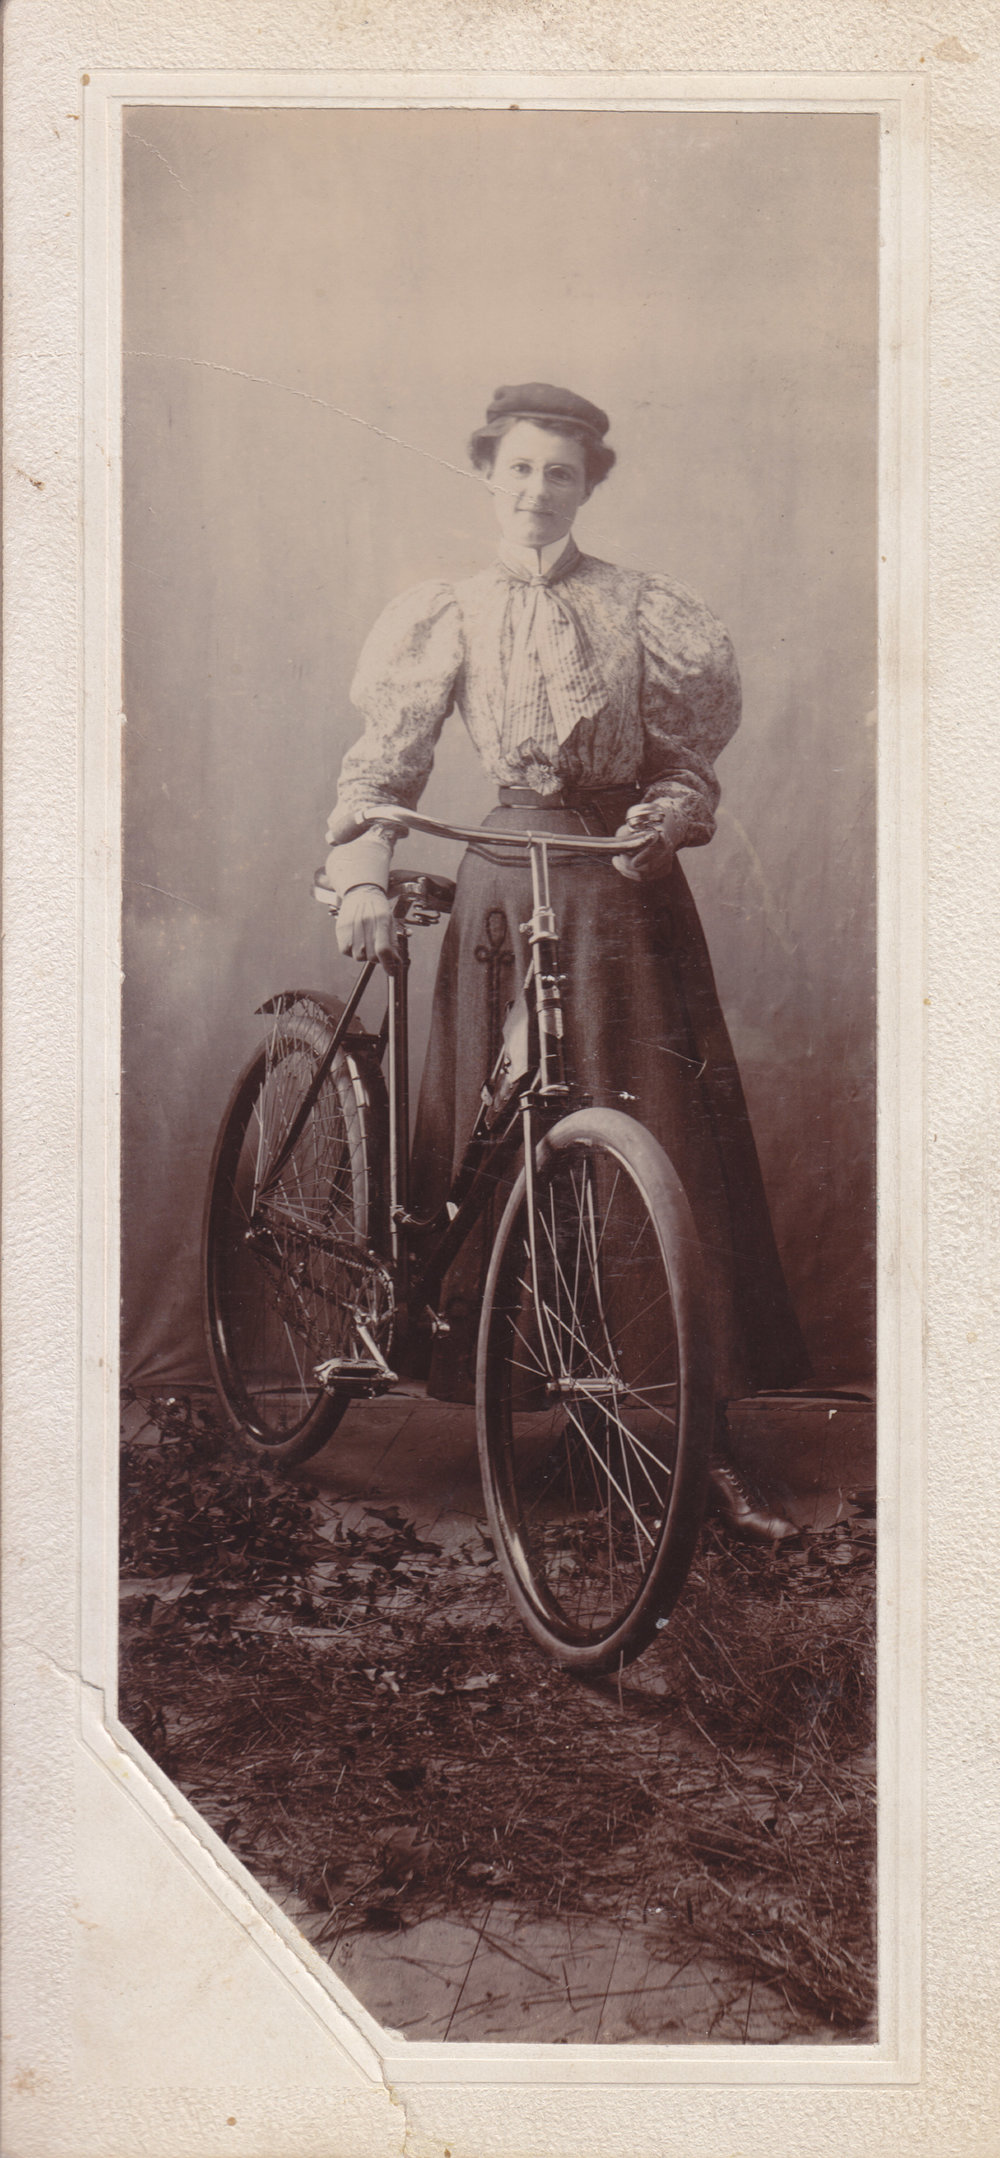 Studio portrait with bicycle, mid-1890s.